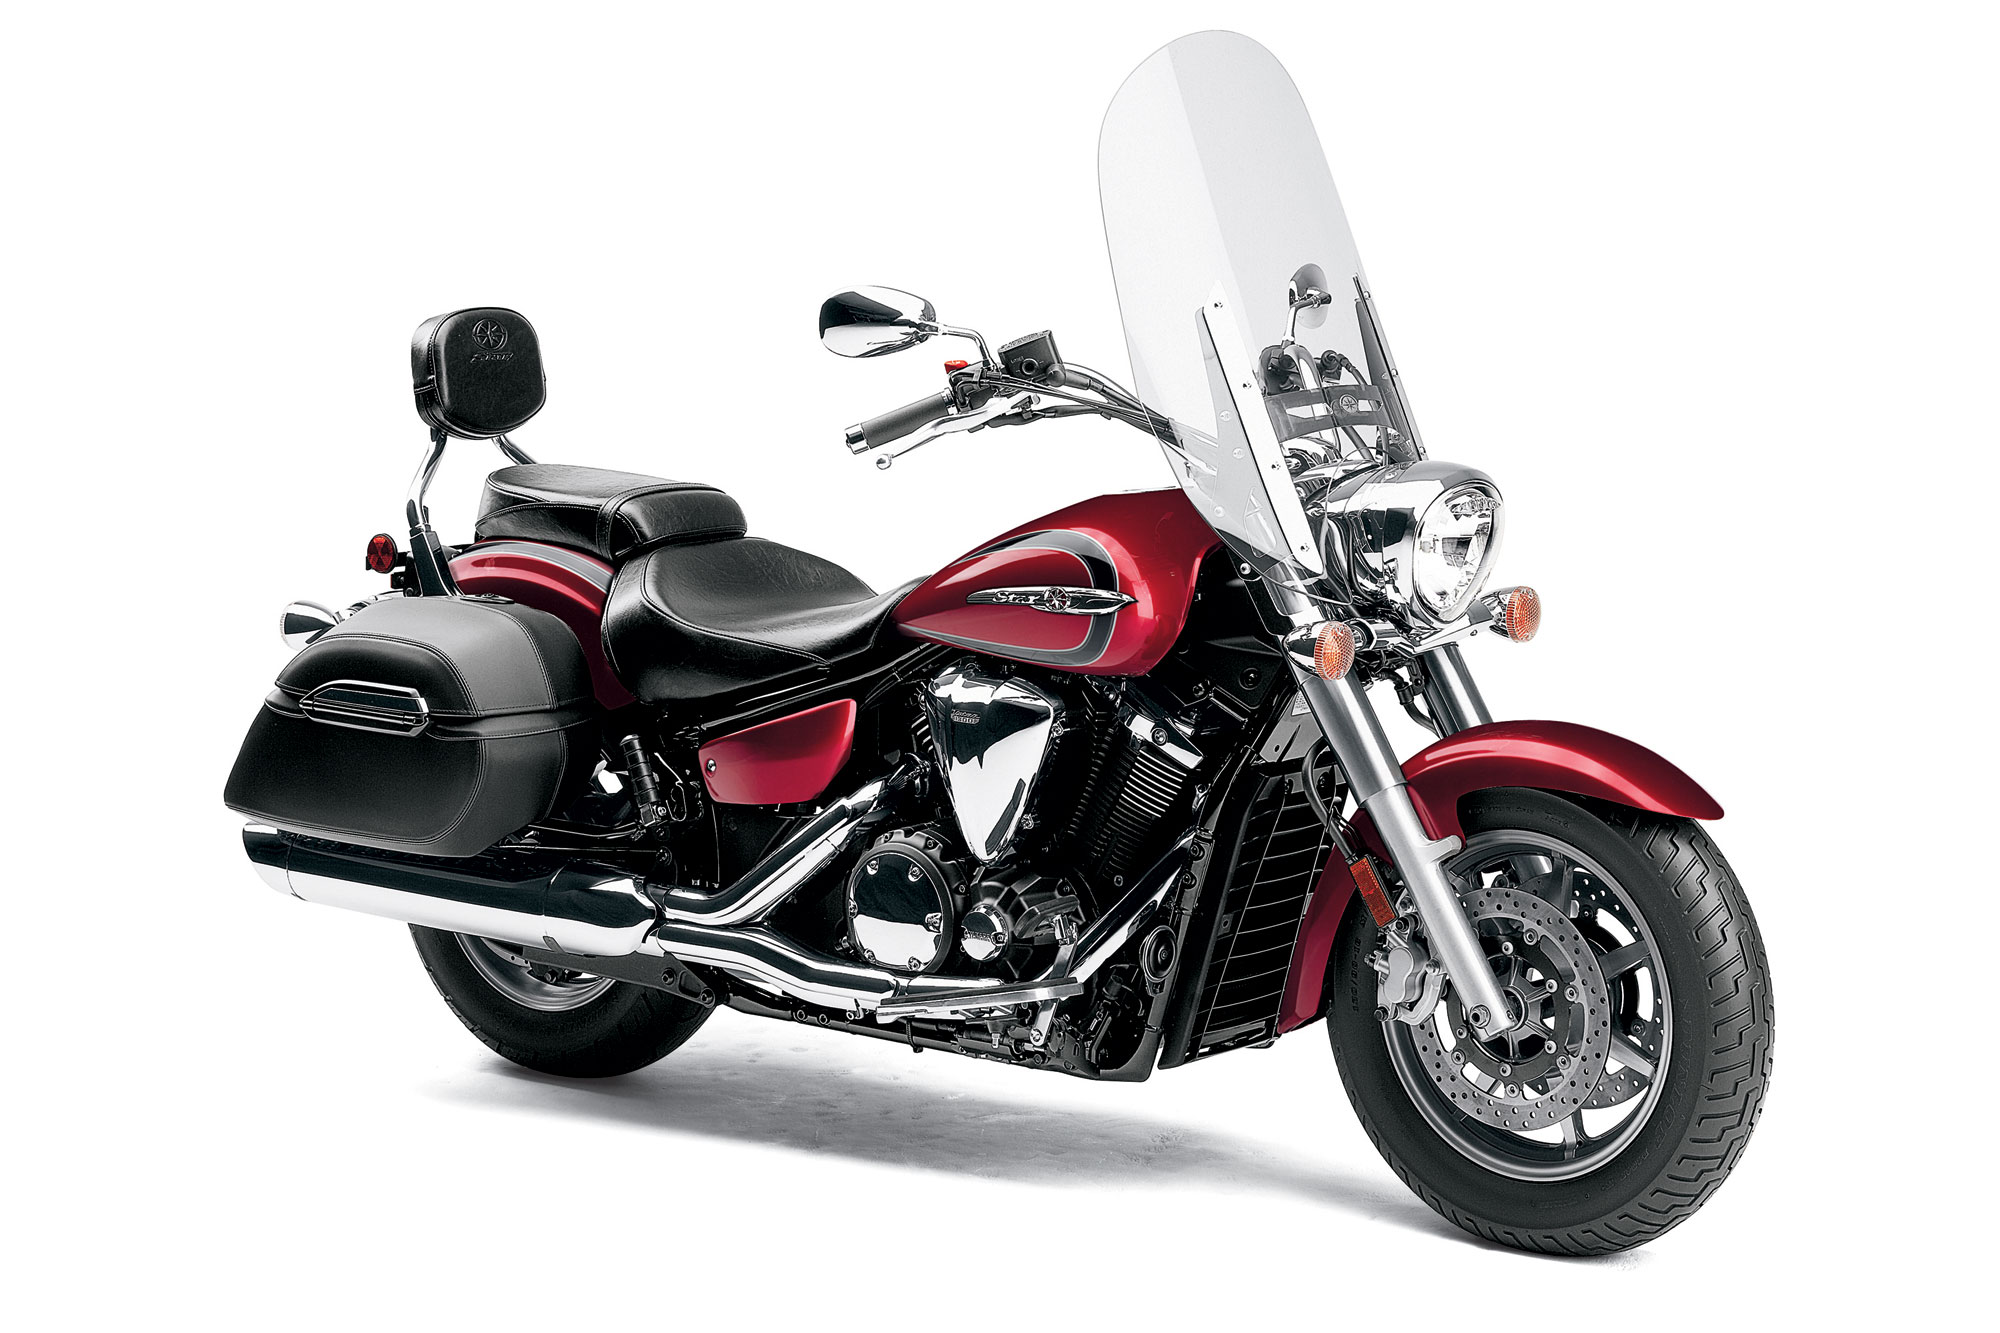 2014 v star 1300 tourer with 2009 Yamaha Xvs 1300 A Midnight Star on 2013 Cruze station wagon additionally Watch in addition The 2014 Harley Davidson Softail Deluxe Revealed Photo Gallery 65942 likewise Watch also 2012 Tiguan.